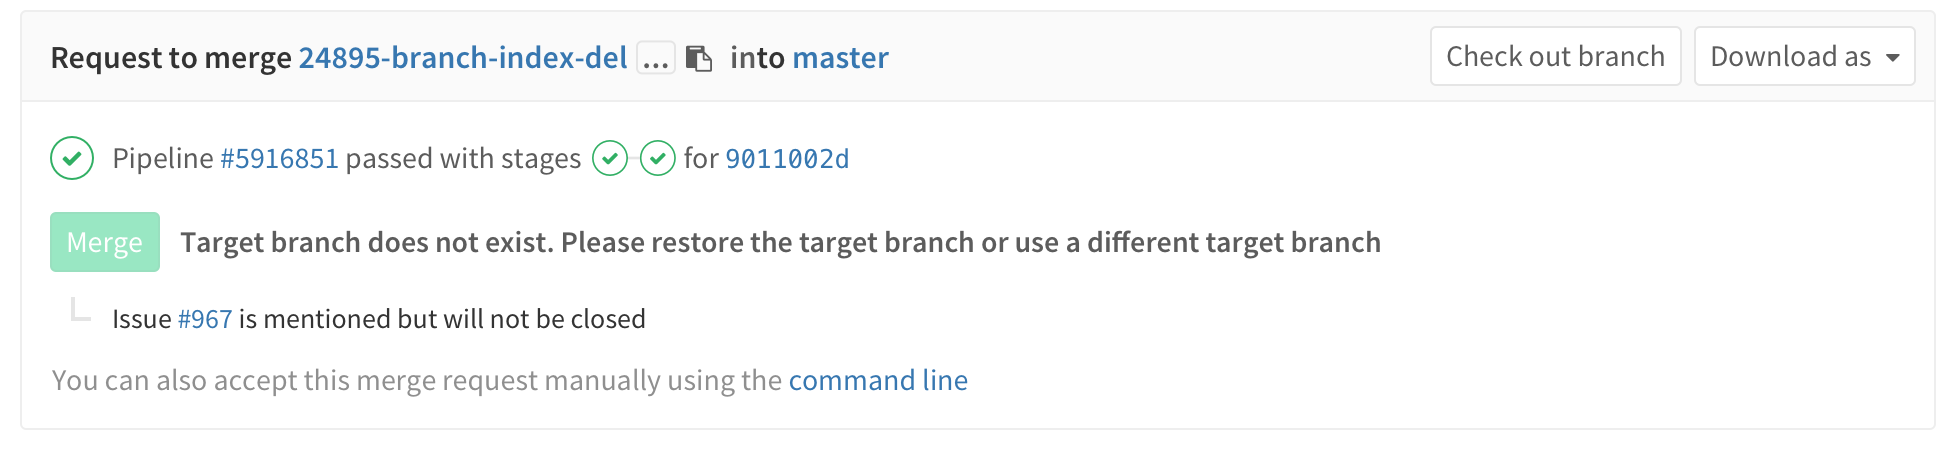 MR-open-not-able-to-merge-no-target-branch